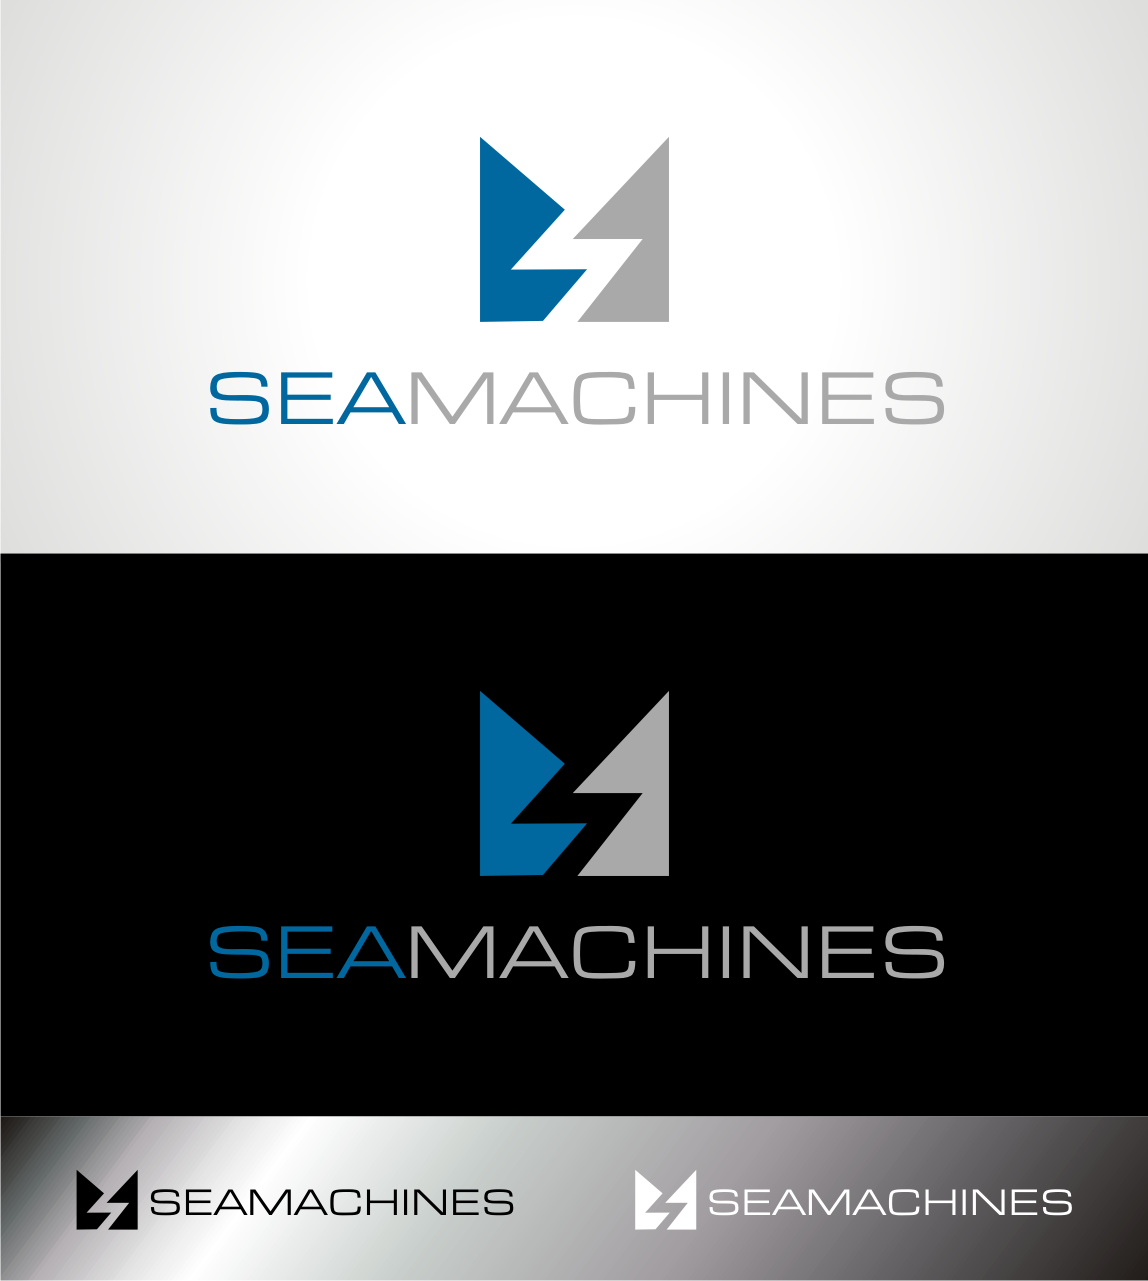 Logo Design by Heru budi Santoso - Entry No. 141 in the Logo Design Contest Creative Logo Design for SeaMachines.